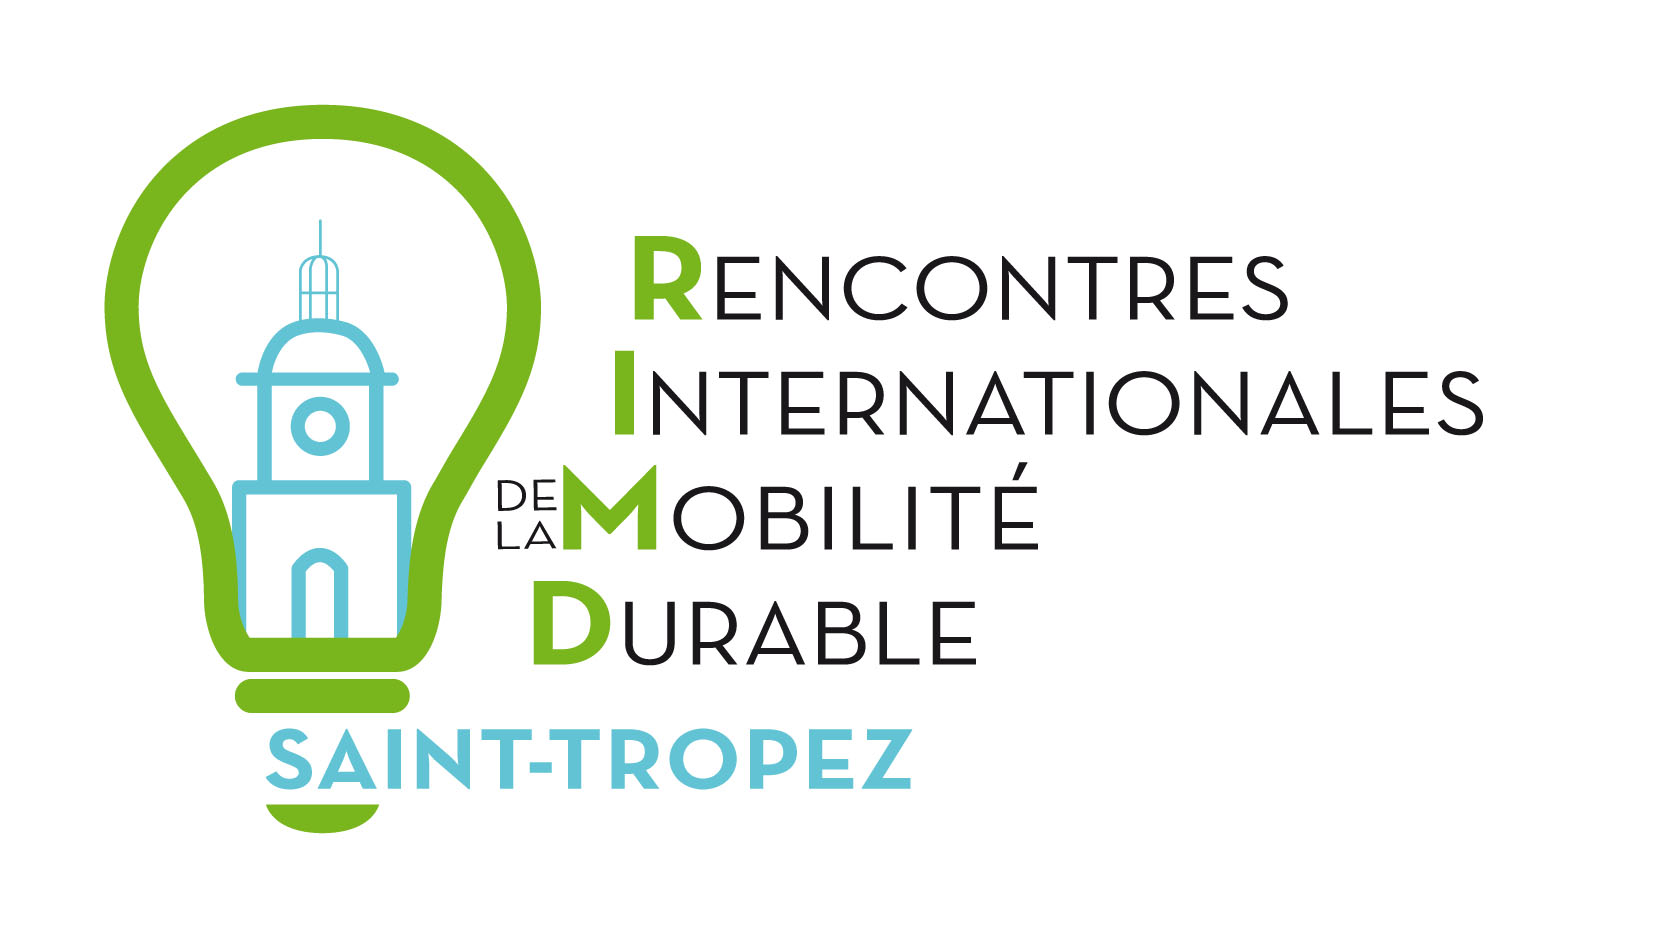 Rencontres Internationales de la Mobilité Durable à Saint-Tropez